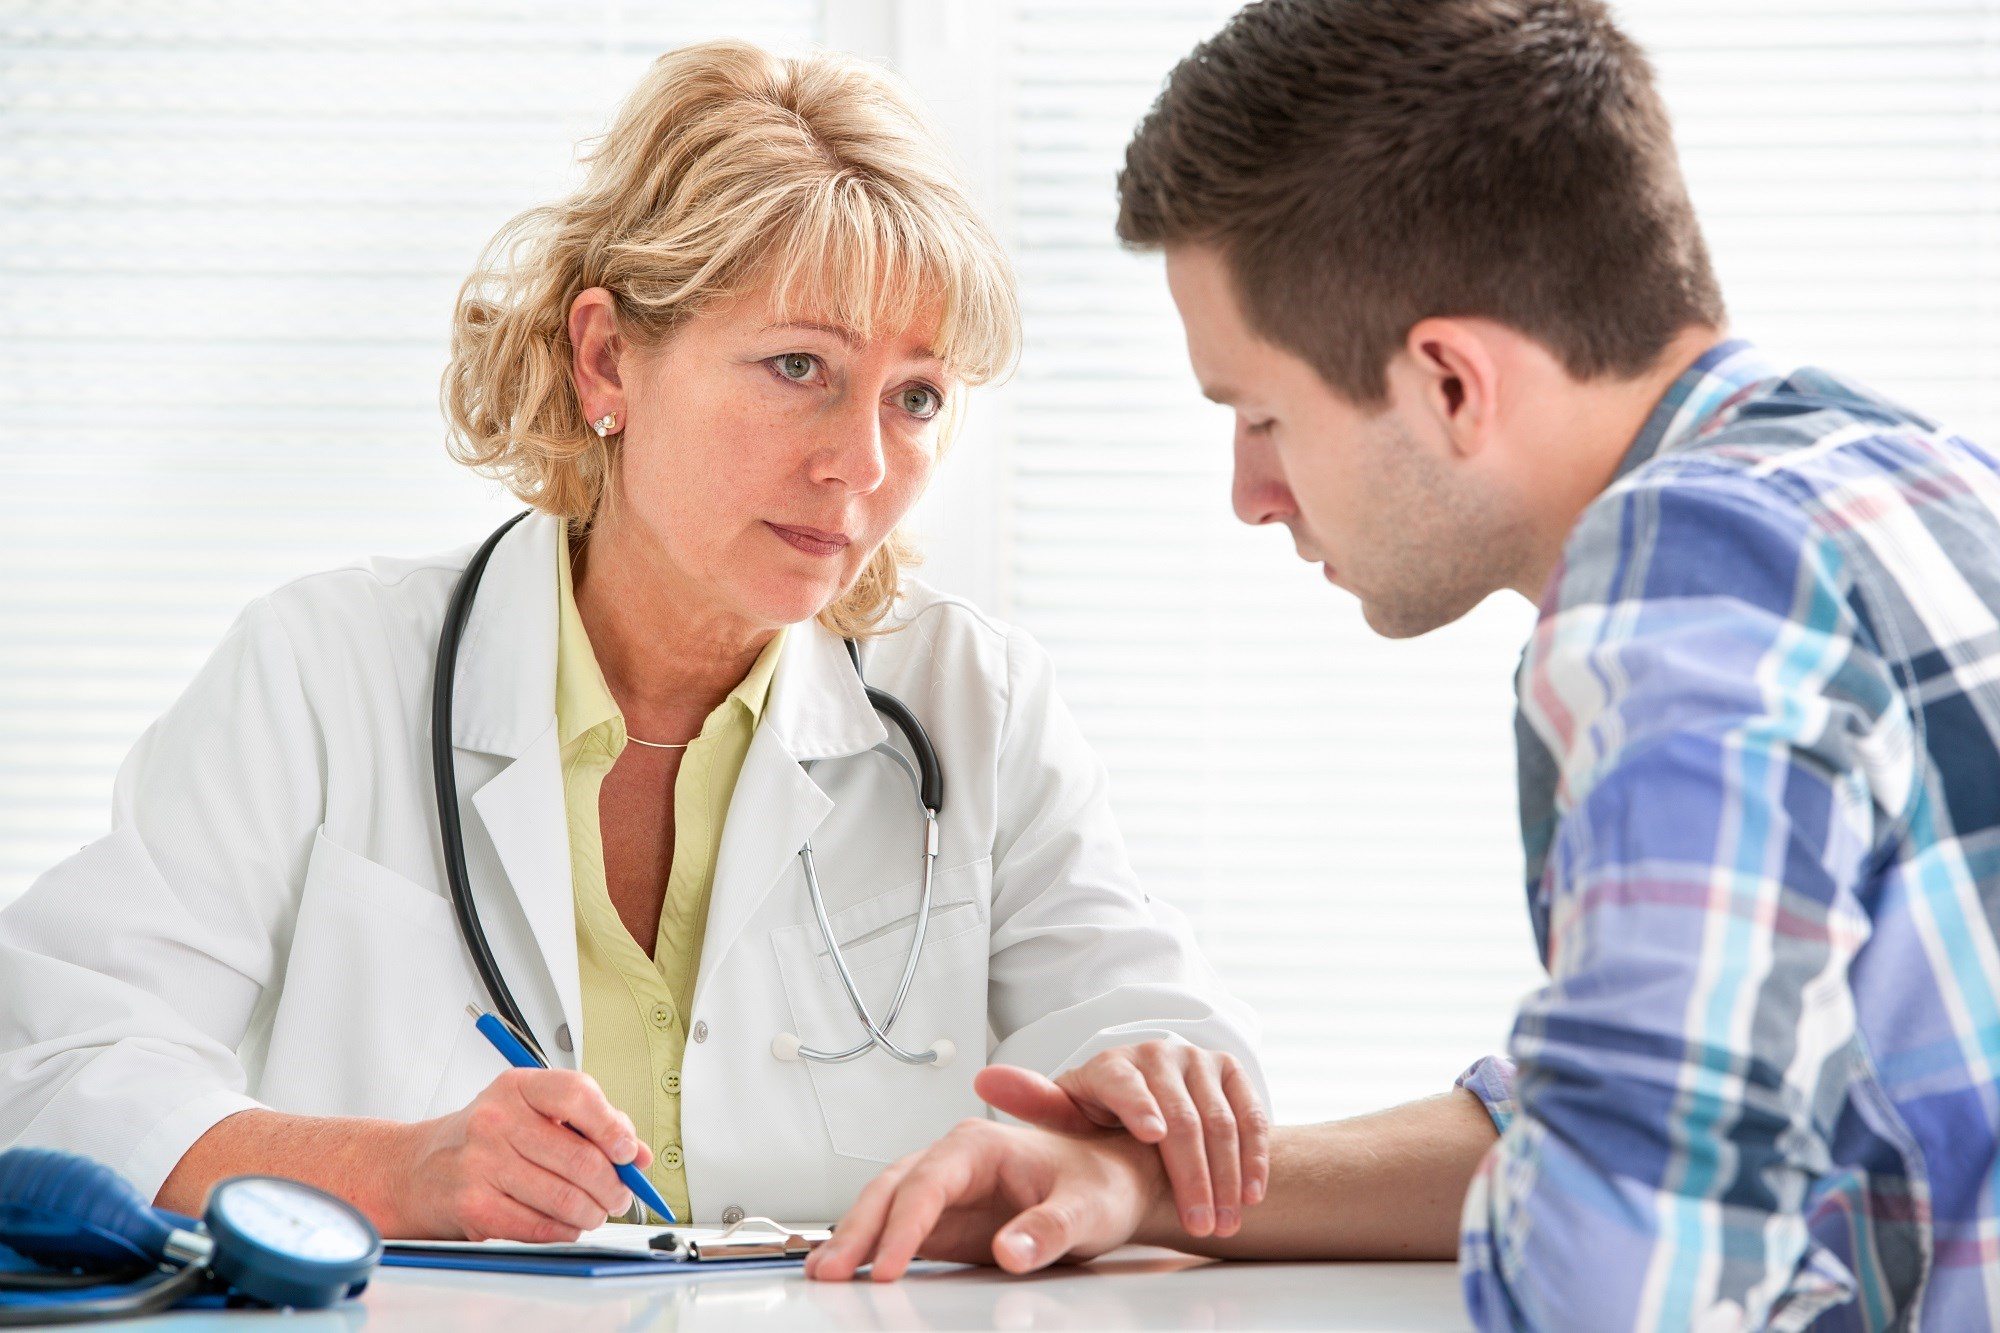 The investigators examined retention in care with attrition (ie, ≥60 days with no treatment-related claims) in youths who received opioid use disorder medication.